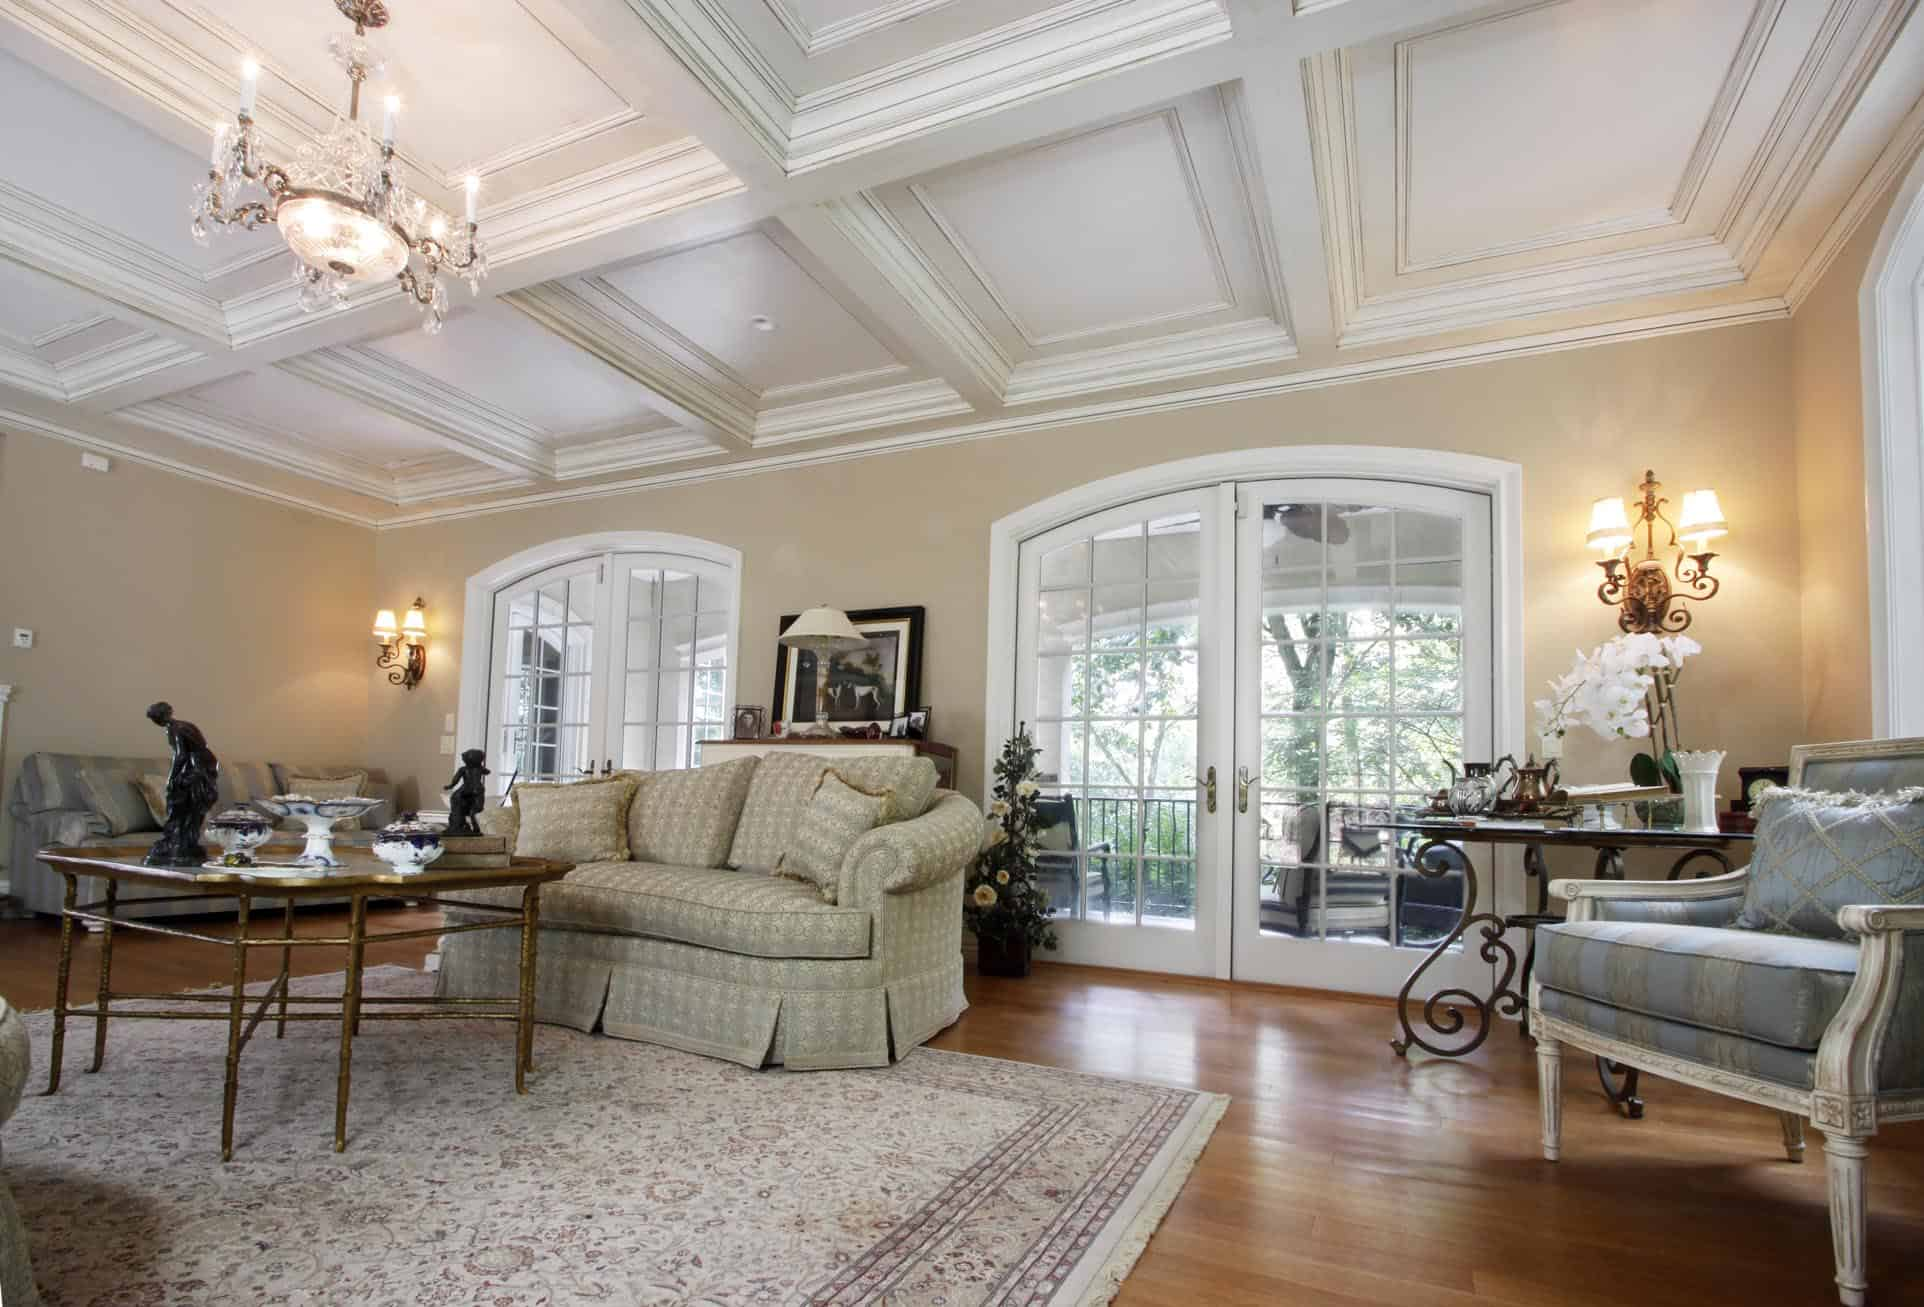 Coffered ceiling design ceiling beams coffer ceiling for Average cost of coffered ceiling